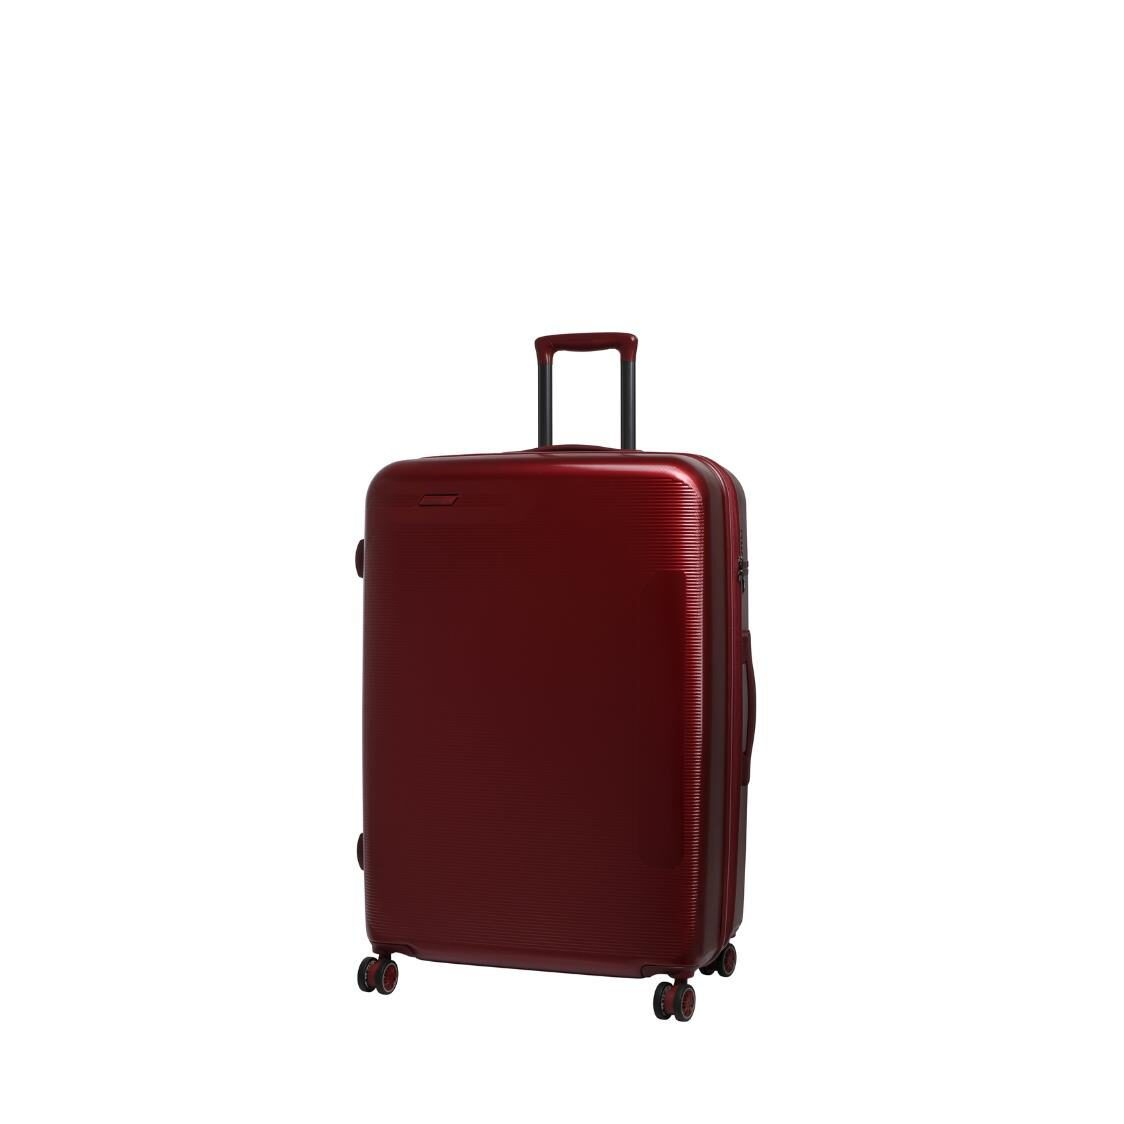 Luggage Polycarbonate Hard Spinner